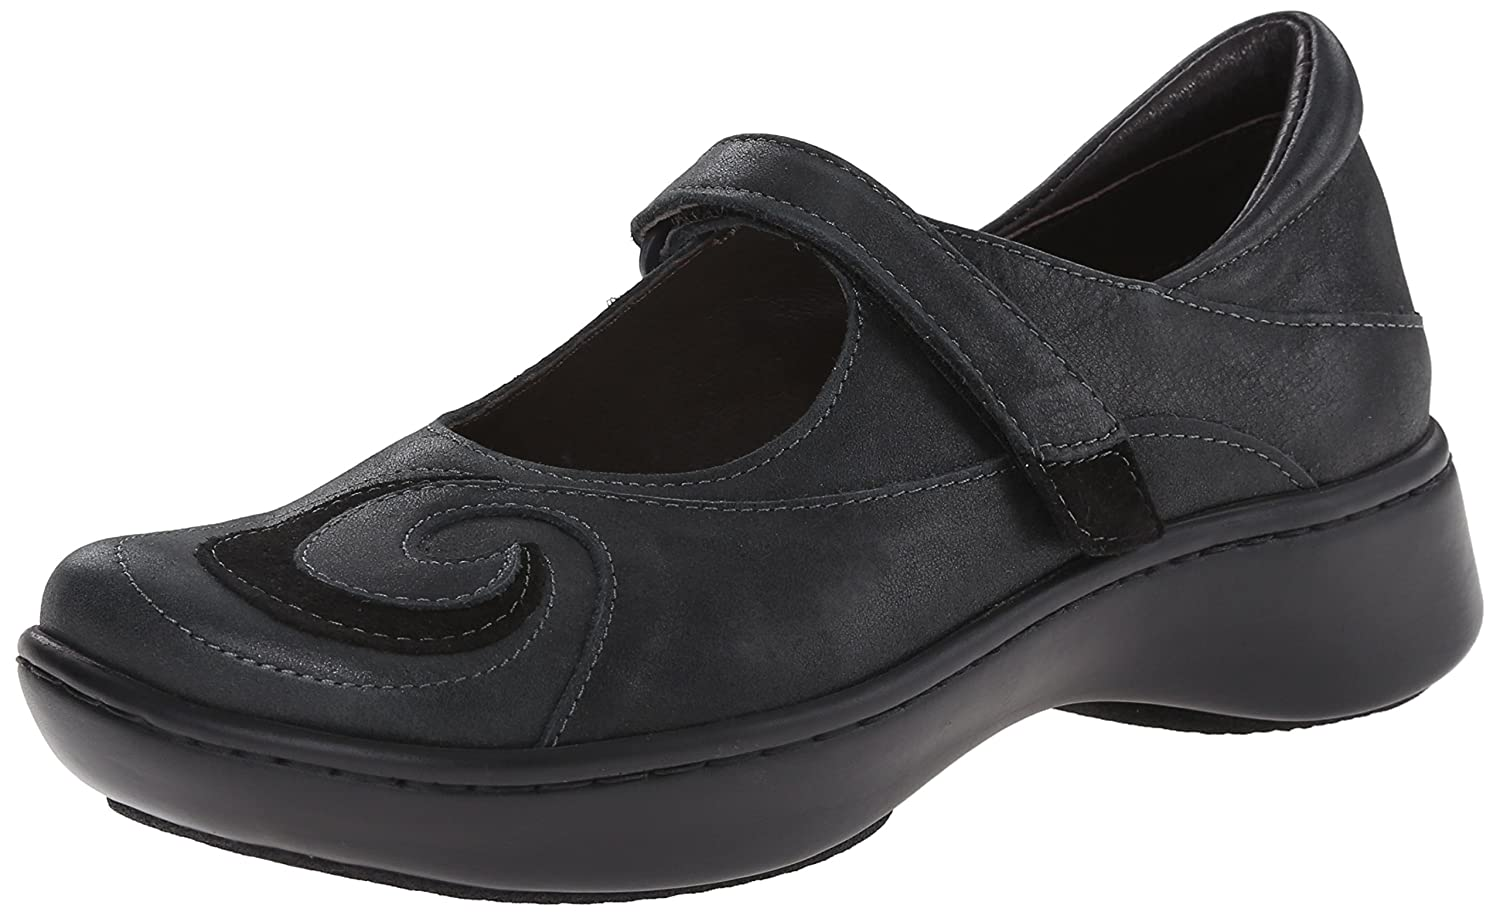 NAOT Women's Sea Mary Jane Flat B00B21LQA4 39 M EU|Shiny Black Leather/Black Suede